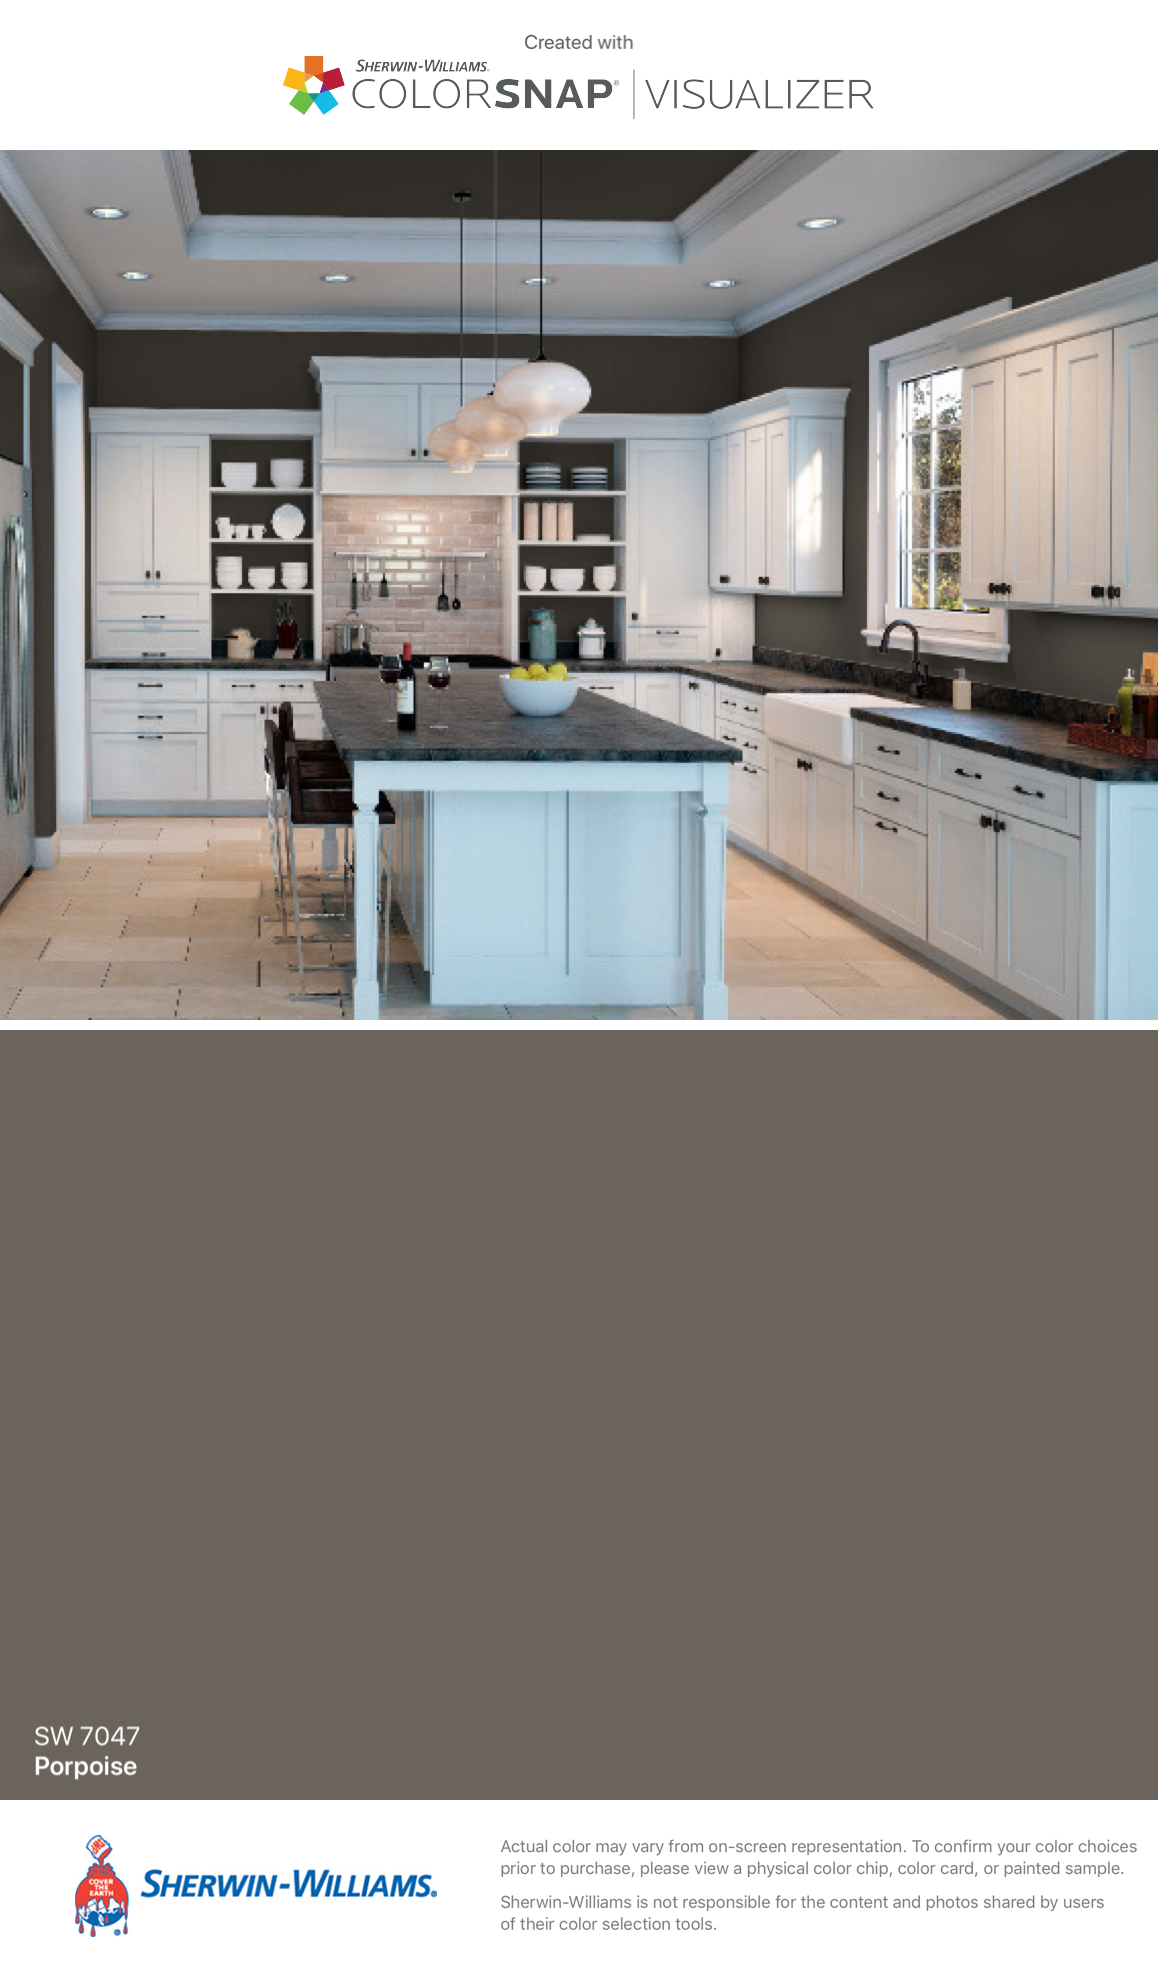 I Found This Color With Colorsnap Visualizer For Iphone By Sherwin Williams Porpoise Painting Kitchen Cabinets Kitchen Paint Sherwin Williams Silver Strand